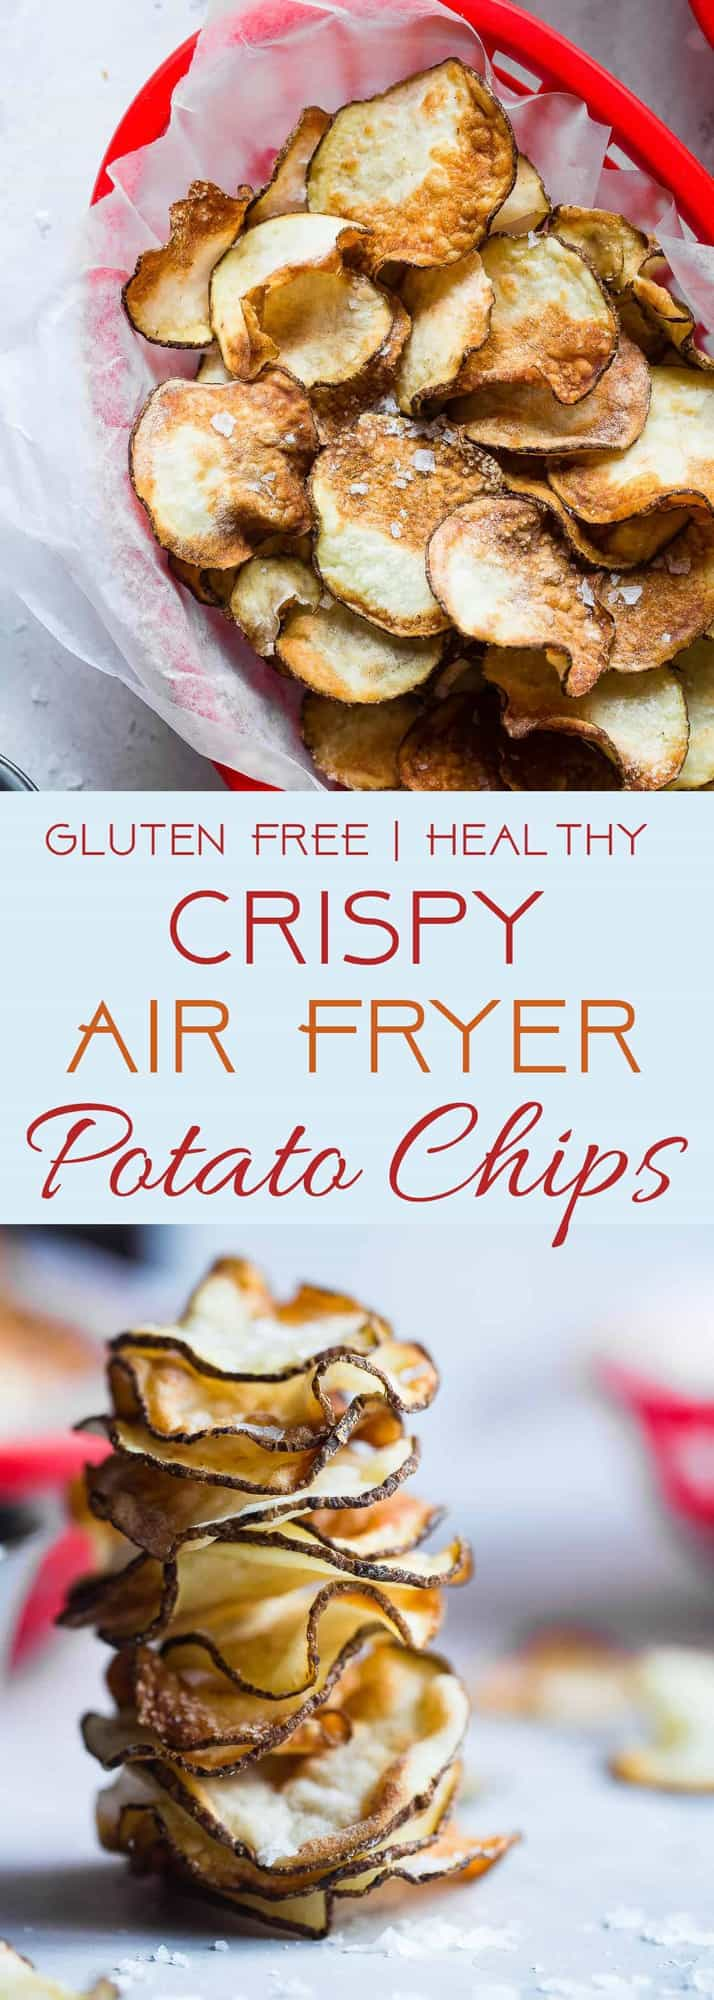 Air Fryer Potato Chips - These EASY Air Fryer Potato Chips are perfectly crispy and crunchy and only use 2 ingredients! You'll never believe they are healthy, vegan, gluten free and only 75 calories for a large serving! | #Foodfaithfitness | #Glutenfree #Airfryer #Healthy #Vegan #CleanEating